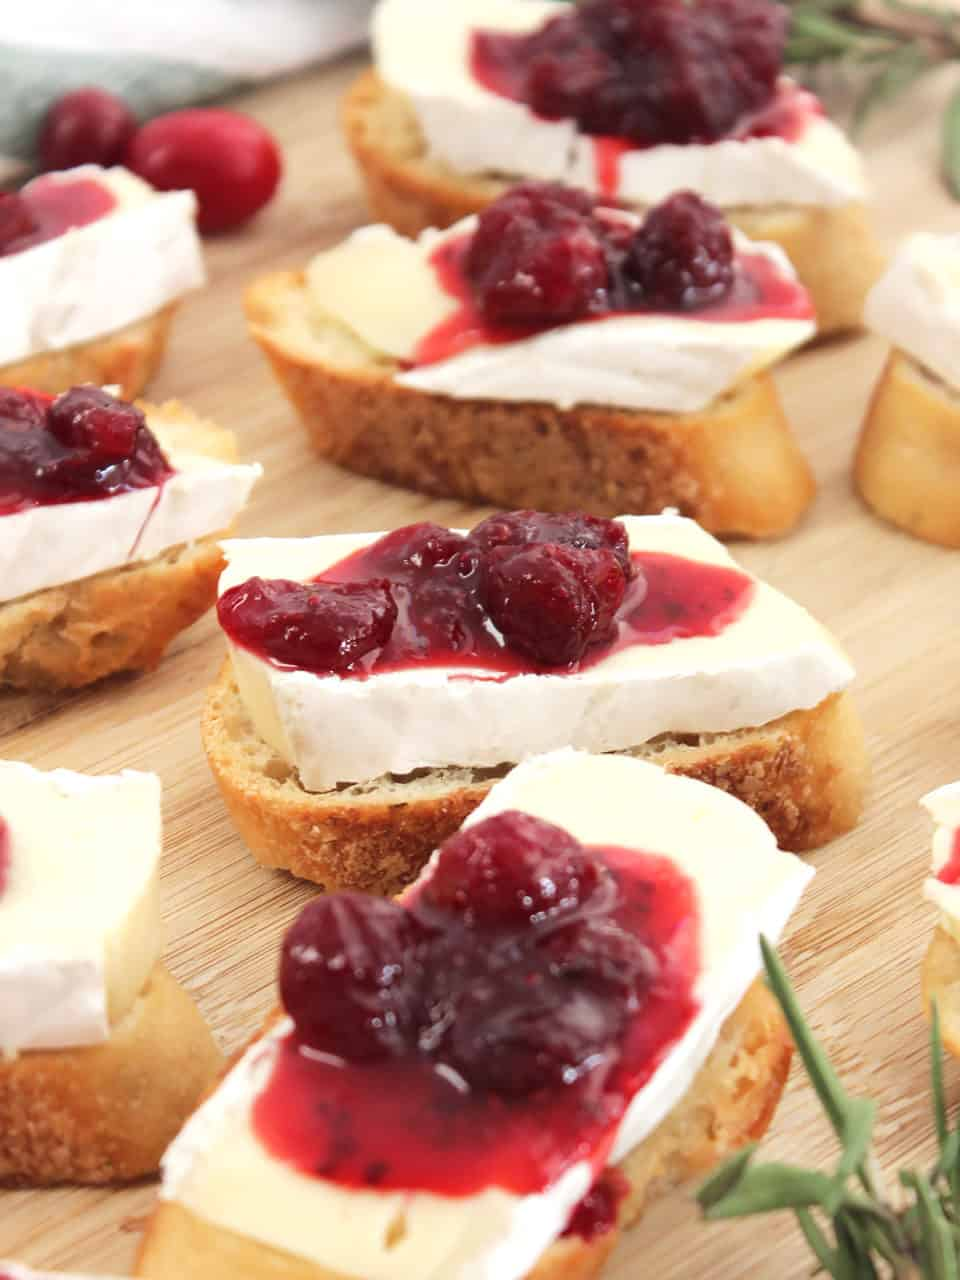 Four crostini topped with brie and cranberry sauce with sprigs of thyme.